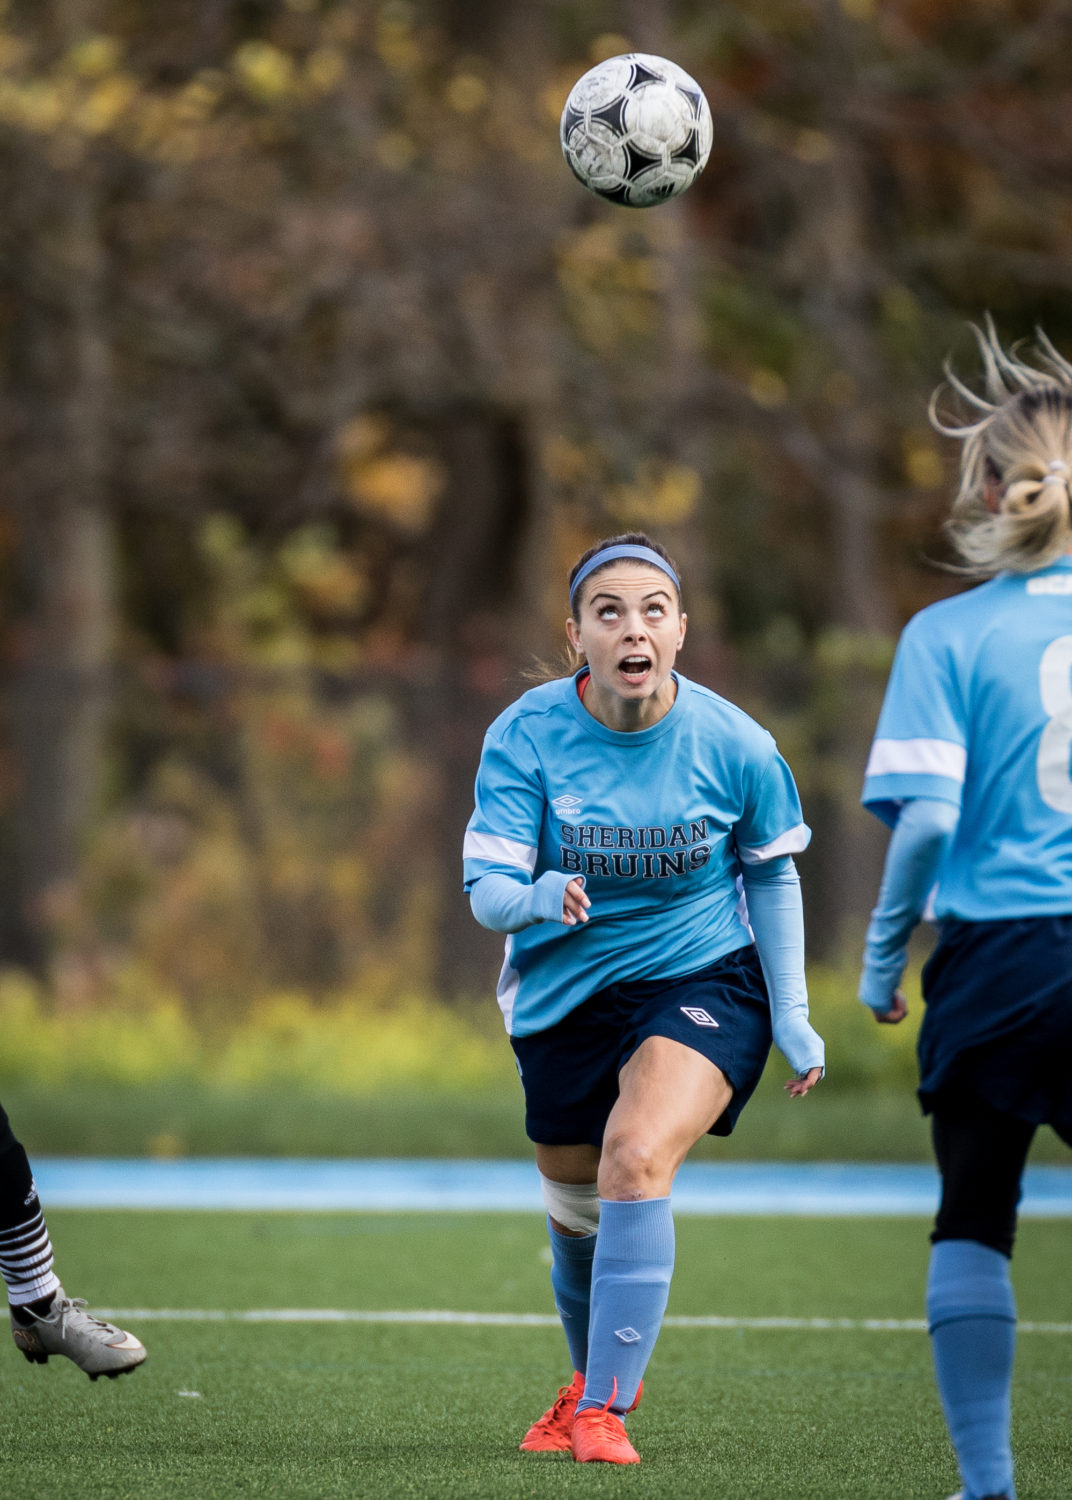 OAKVILLE, ON - Oct. 22, 2016: A Sheridan Bruins player prepares to head the ball.